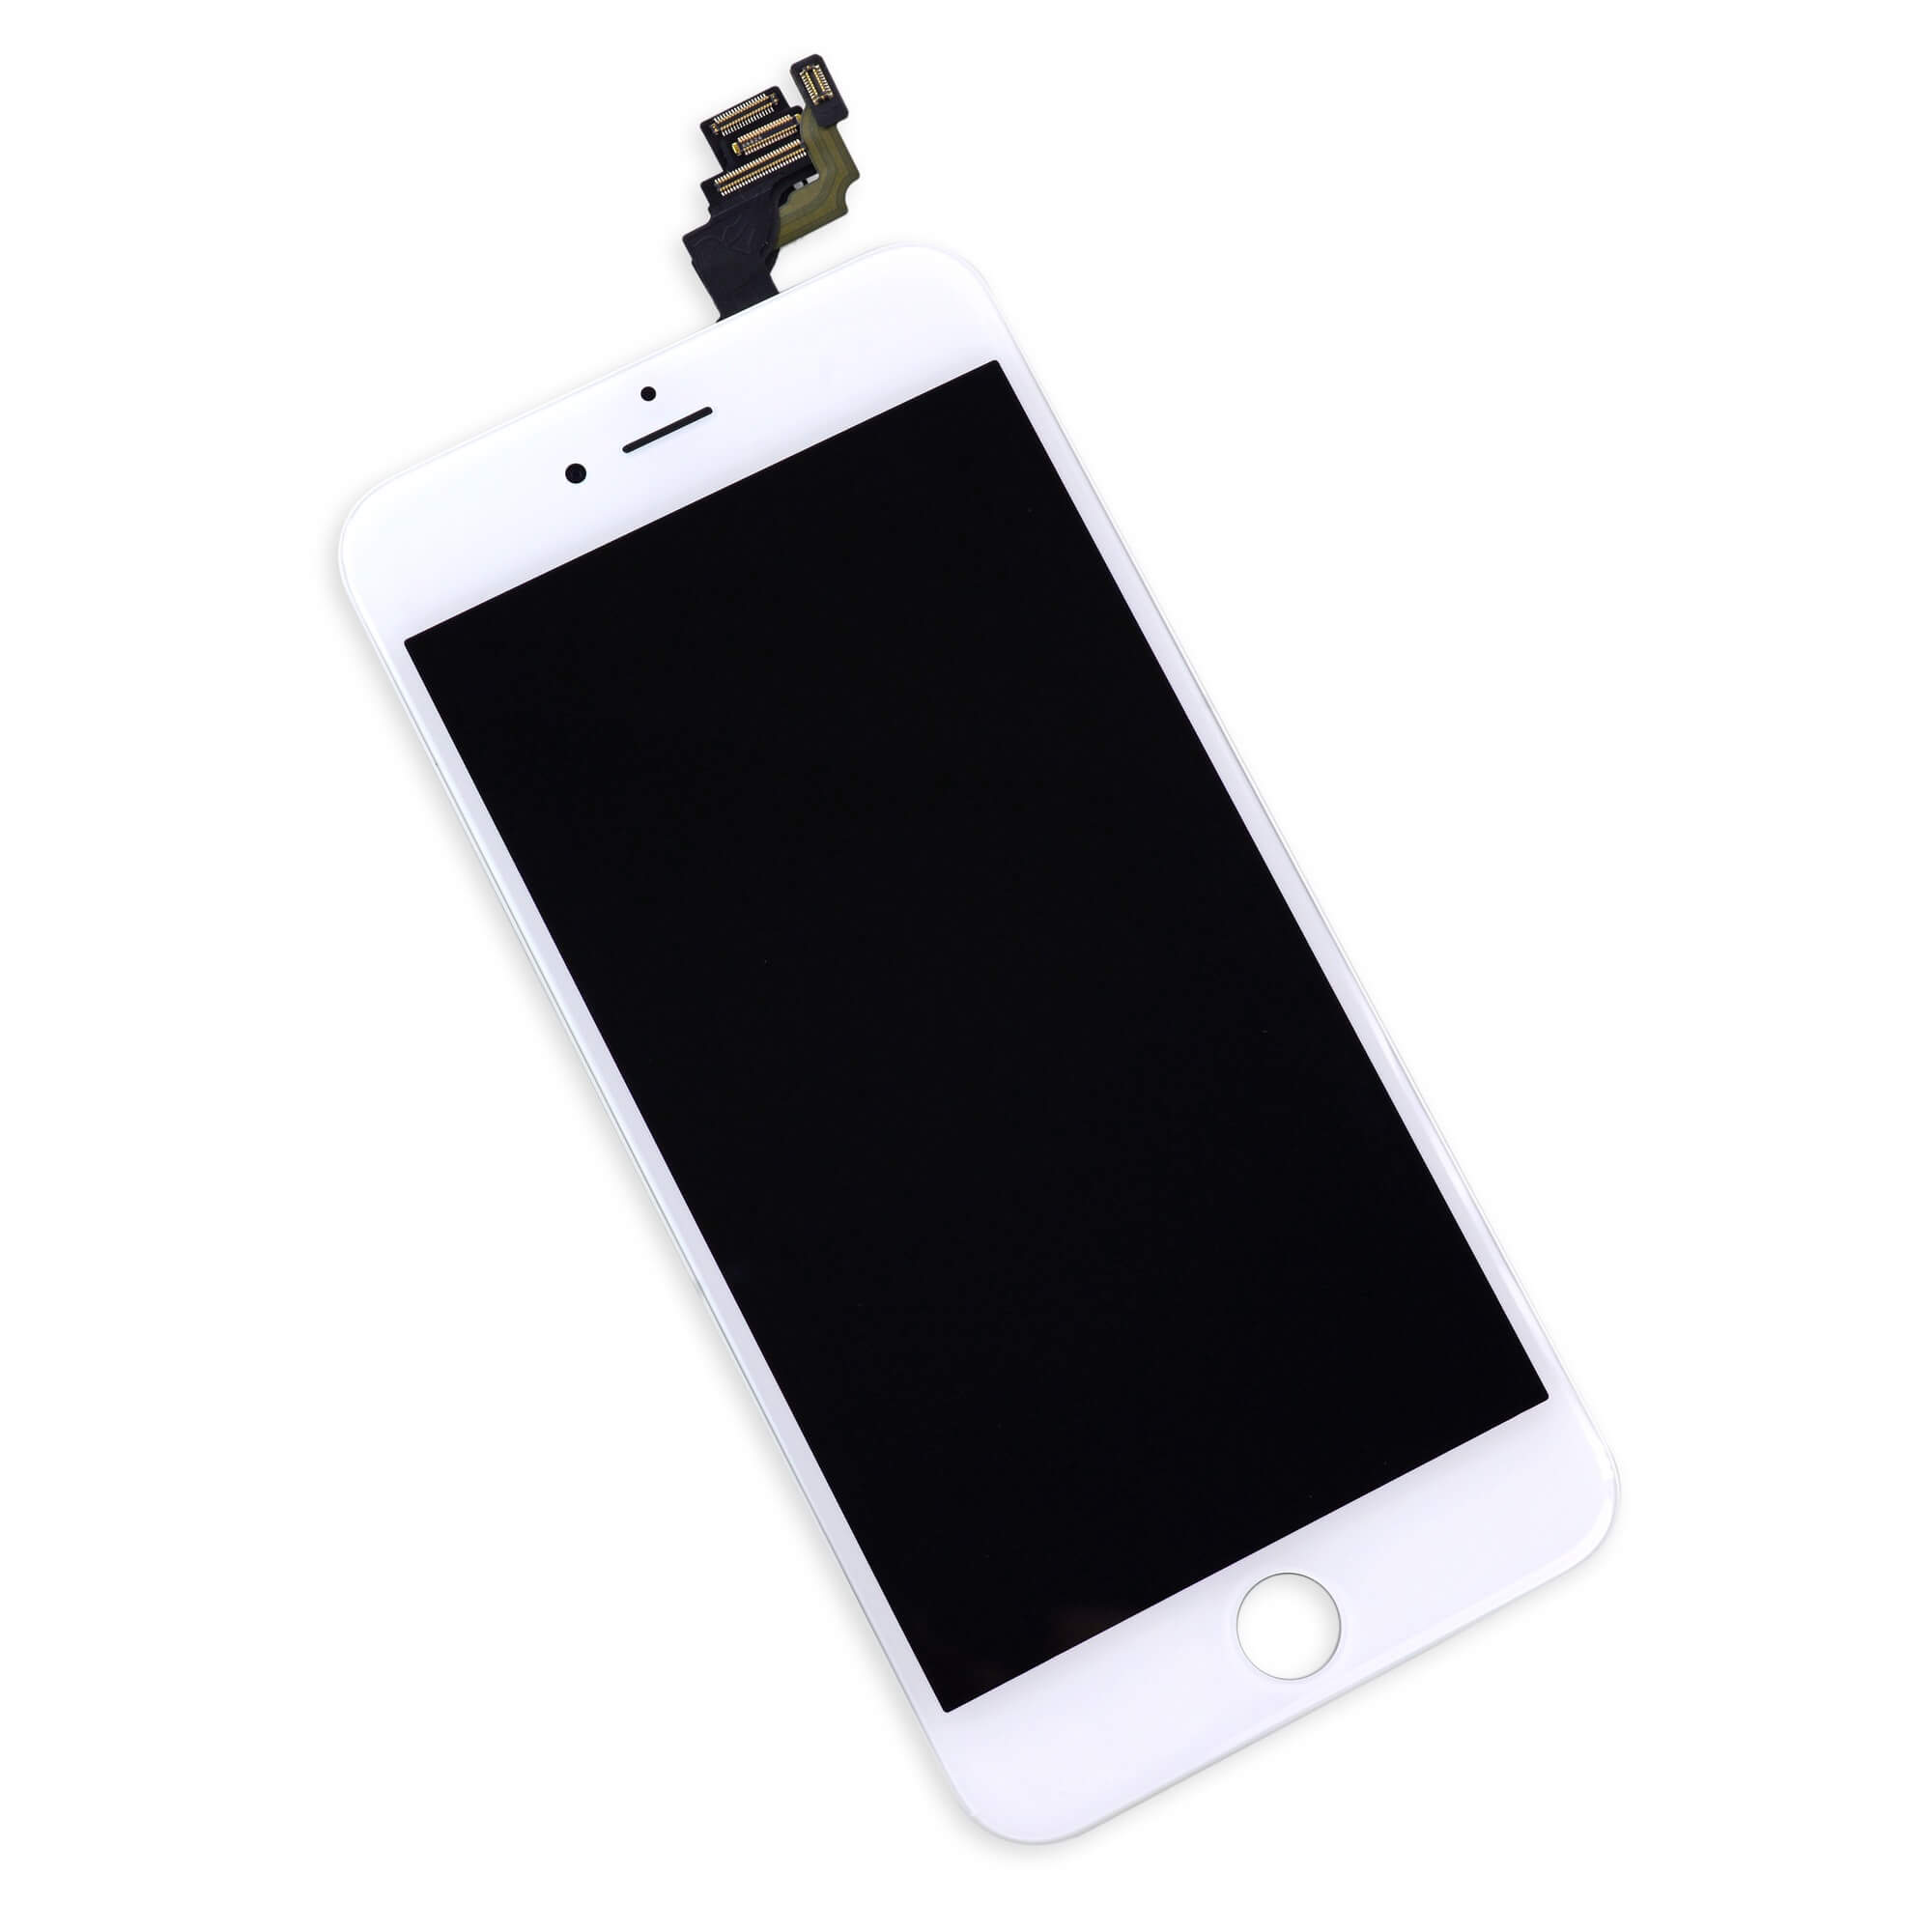 buy online b9cd9 6fca1 Original Display with Touch Screen for Apple iPhone 6 Plus